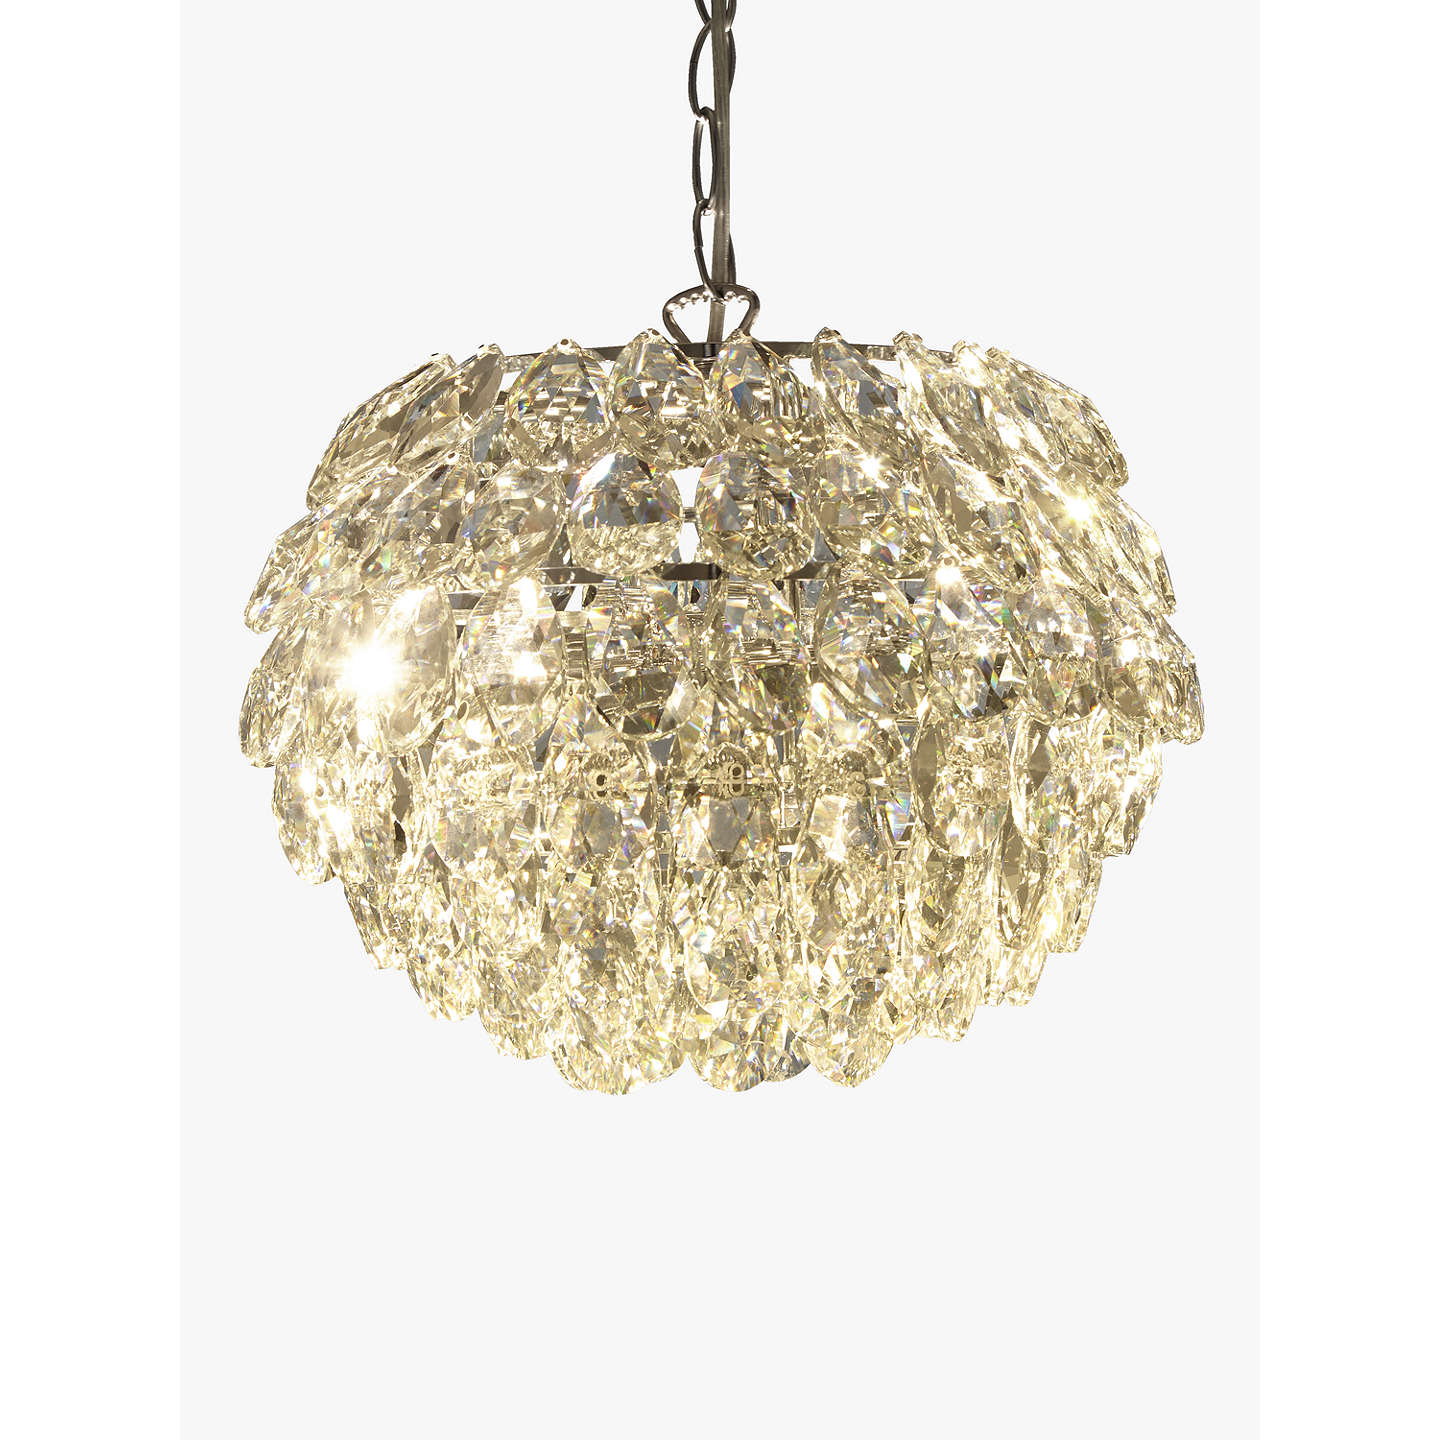 John lewis alexa tear drop ceiling light pendant at john lewis buyjohn lewis alexa tear drop ceiling light pendant online at johnlewis mozeypictures Image collections